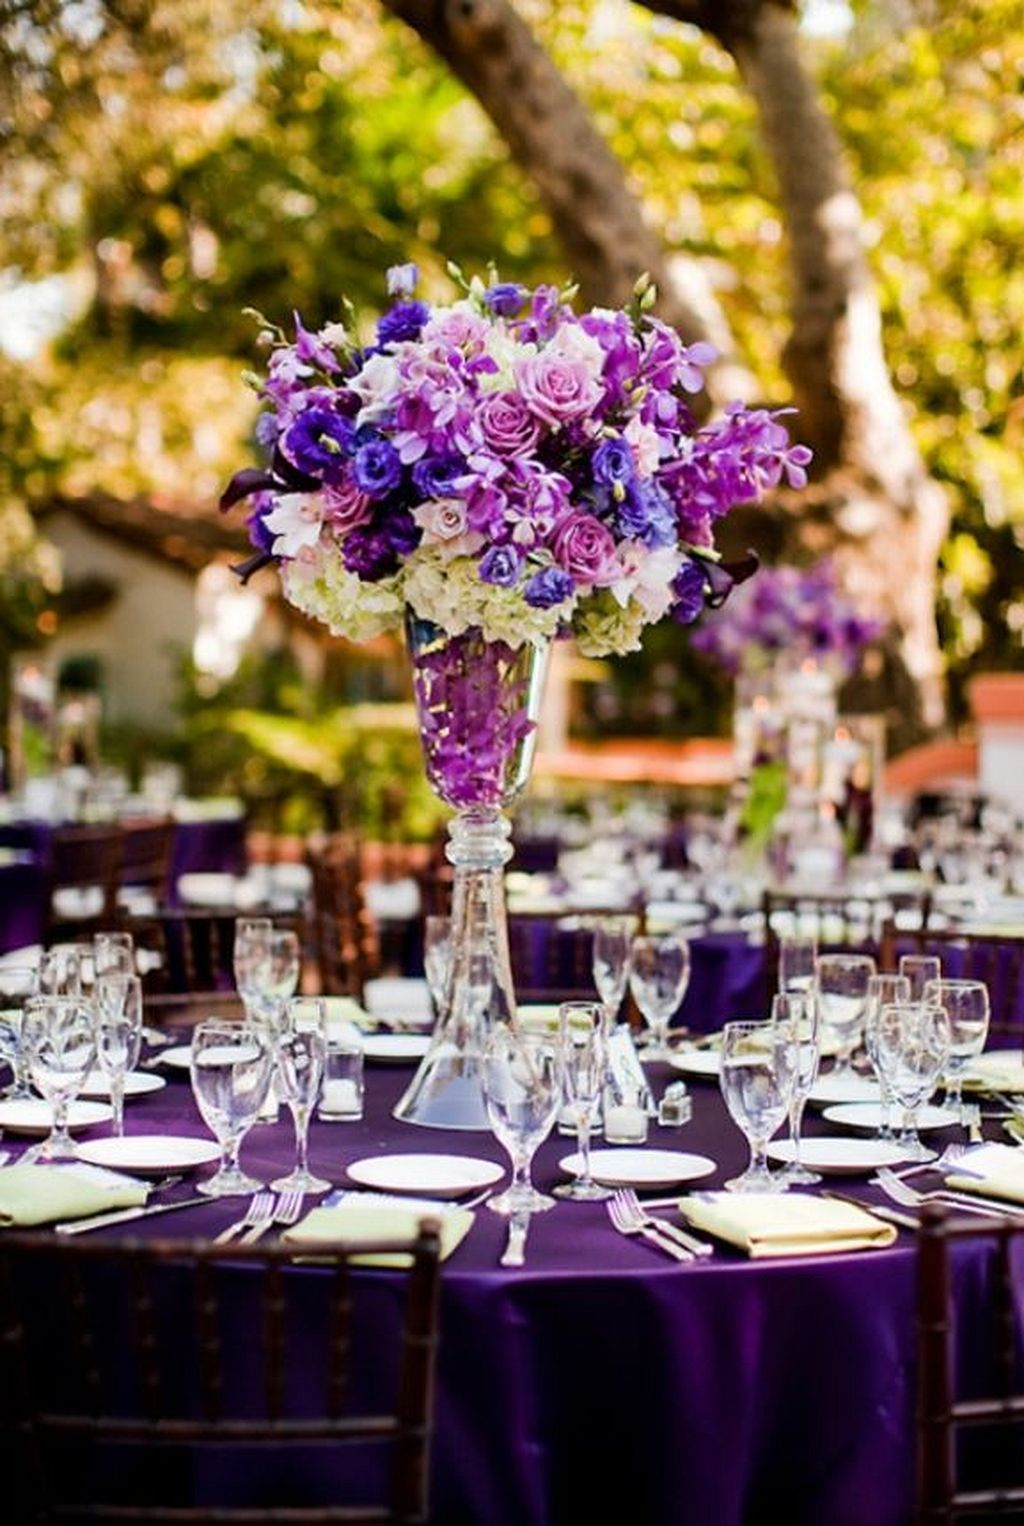 Elegant wedding decoration ideas   Plum Purple and Grey Elegant Wedding Color Ideas  Elegant